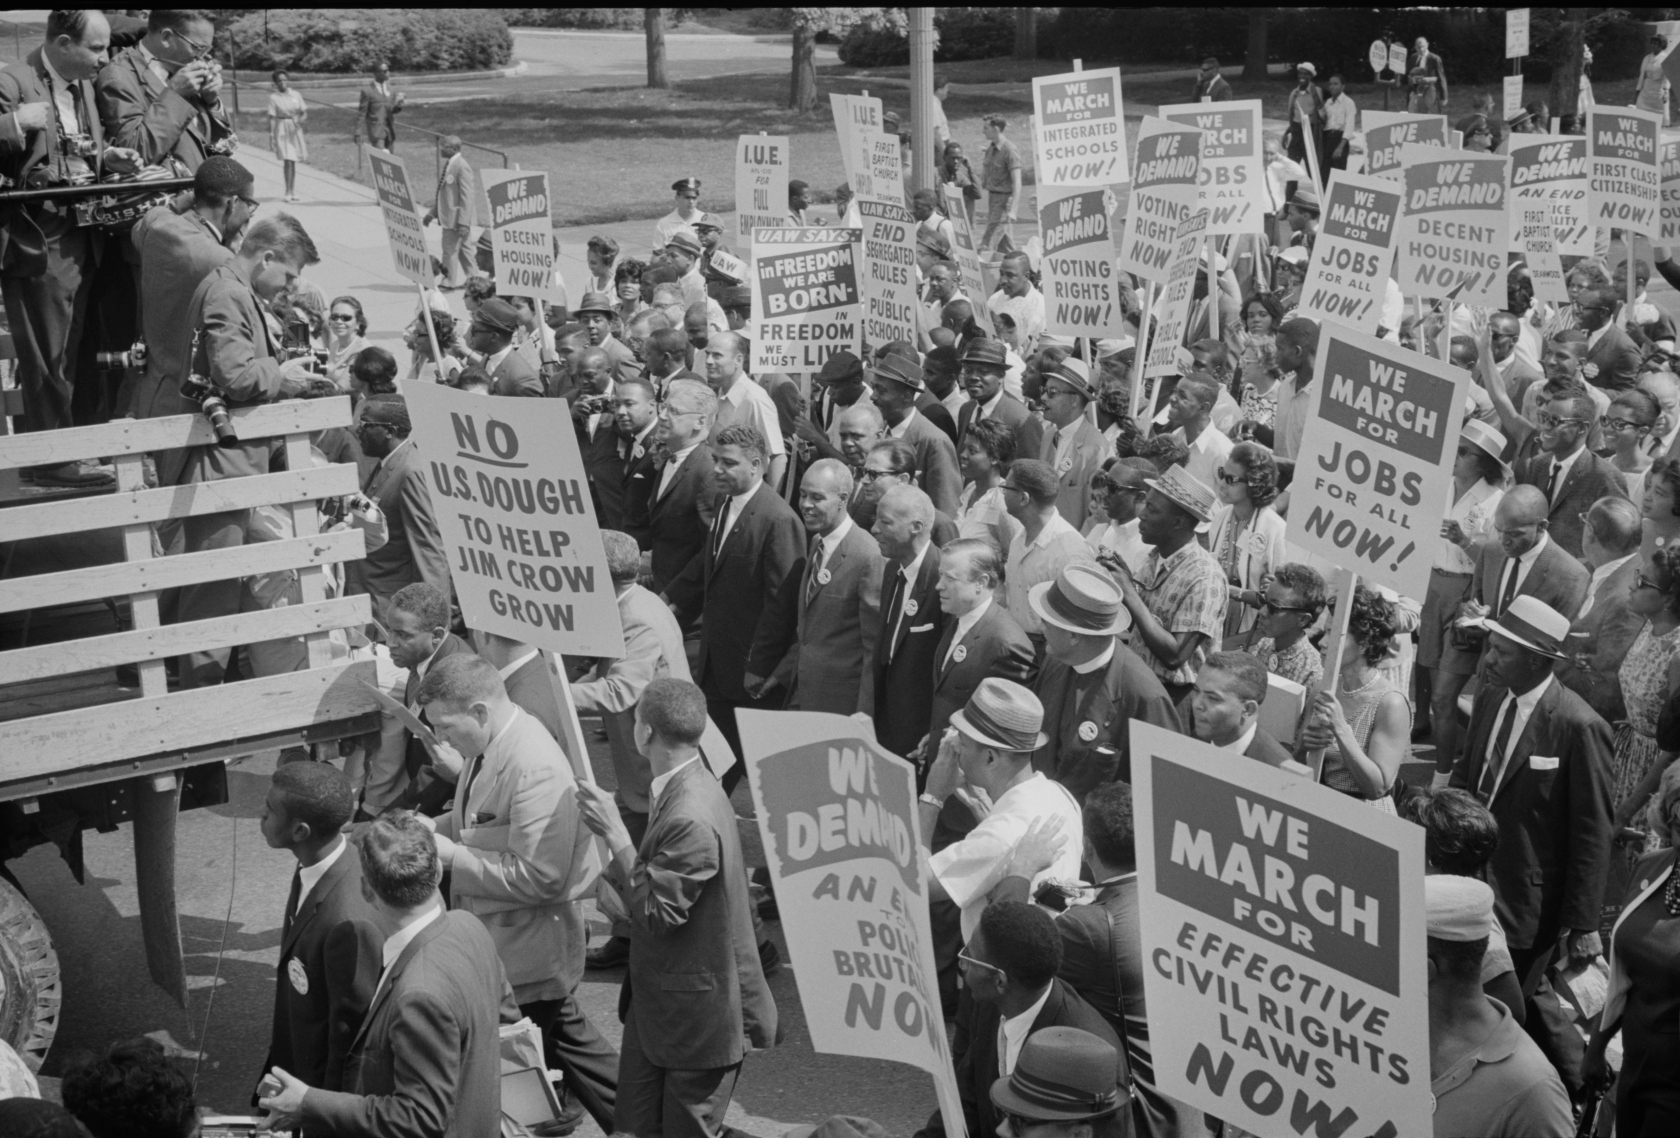 March On Washington-Martin Luther King Jr